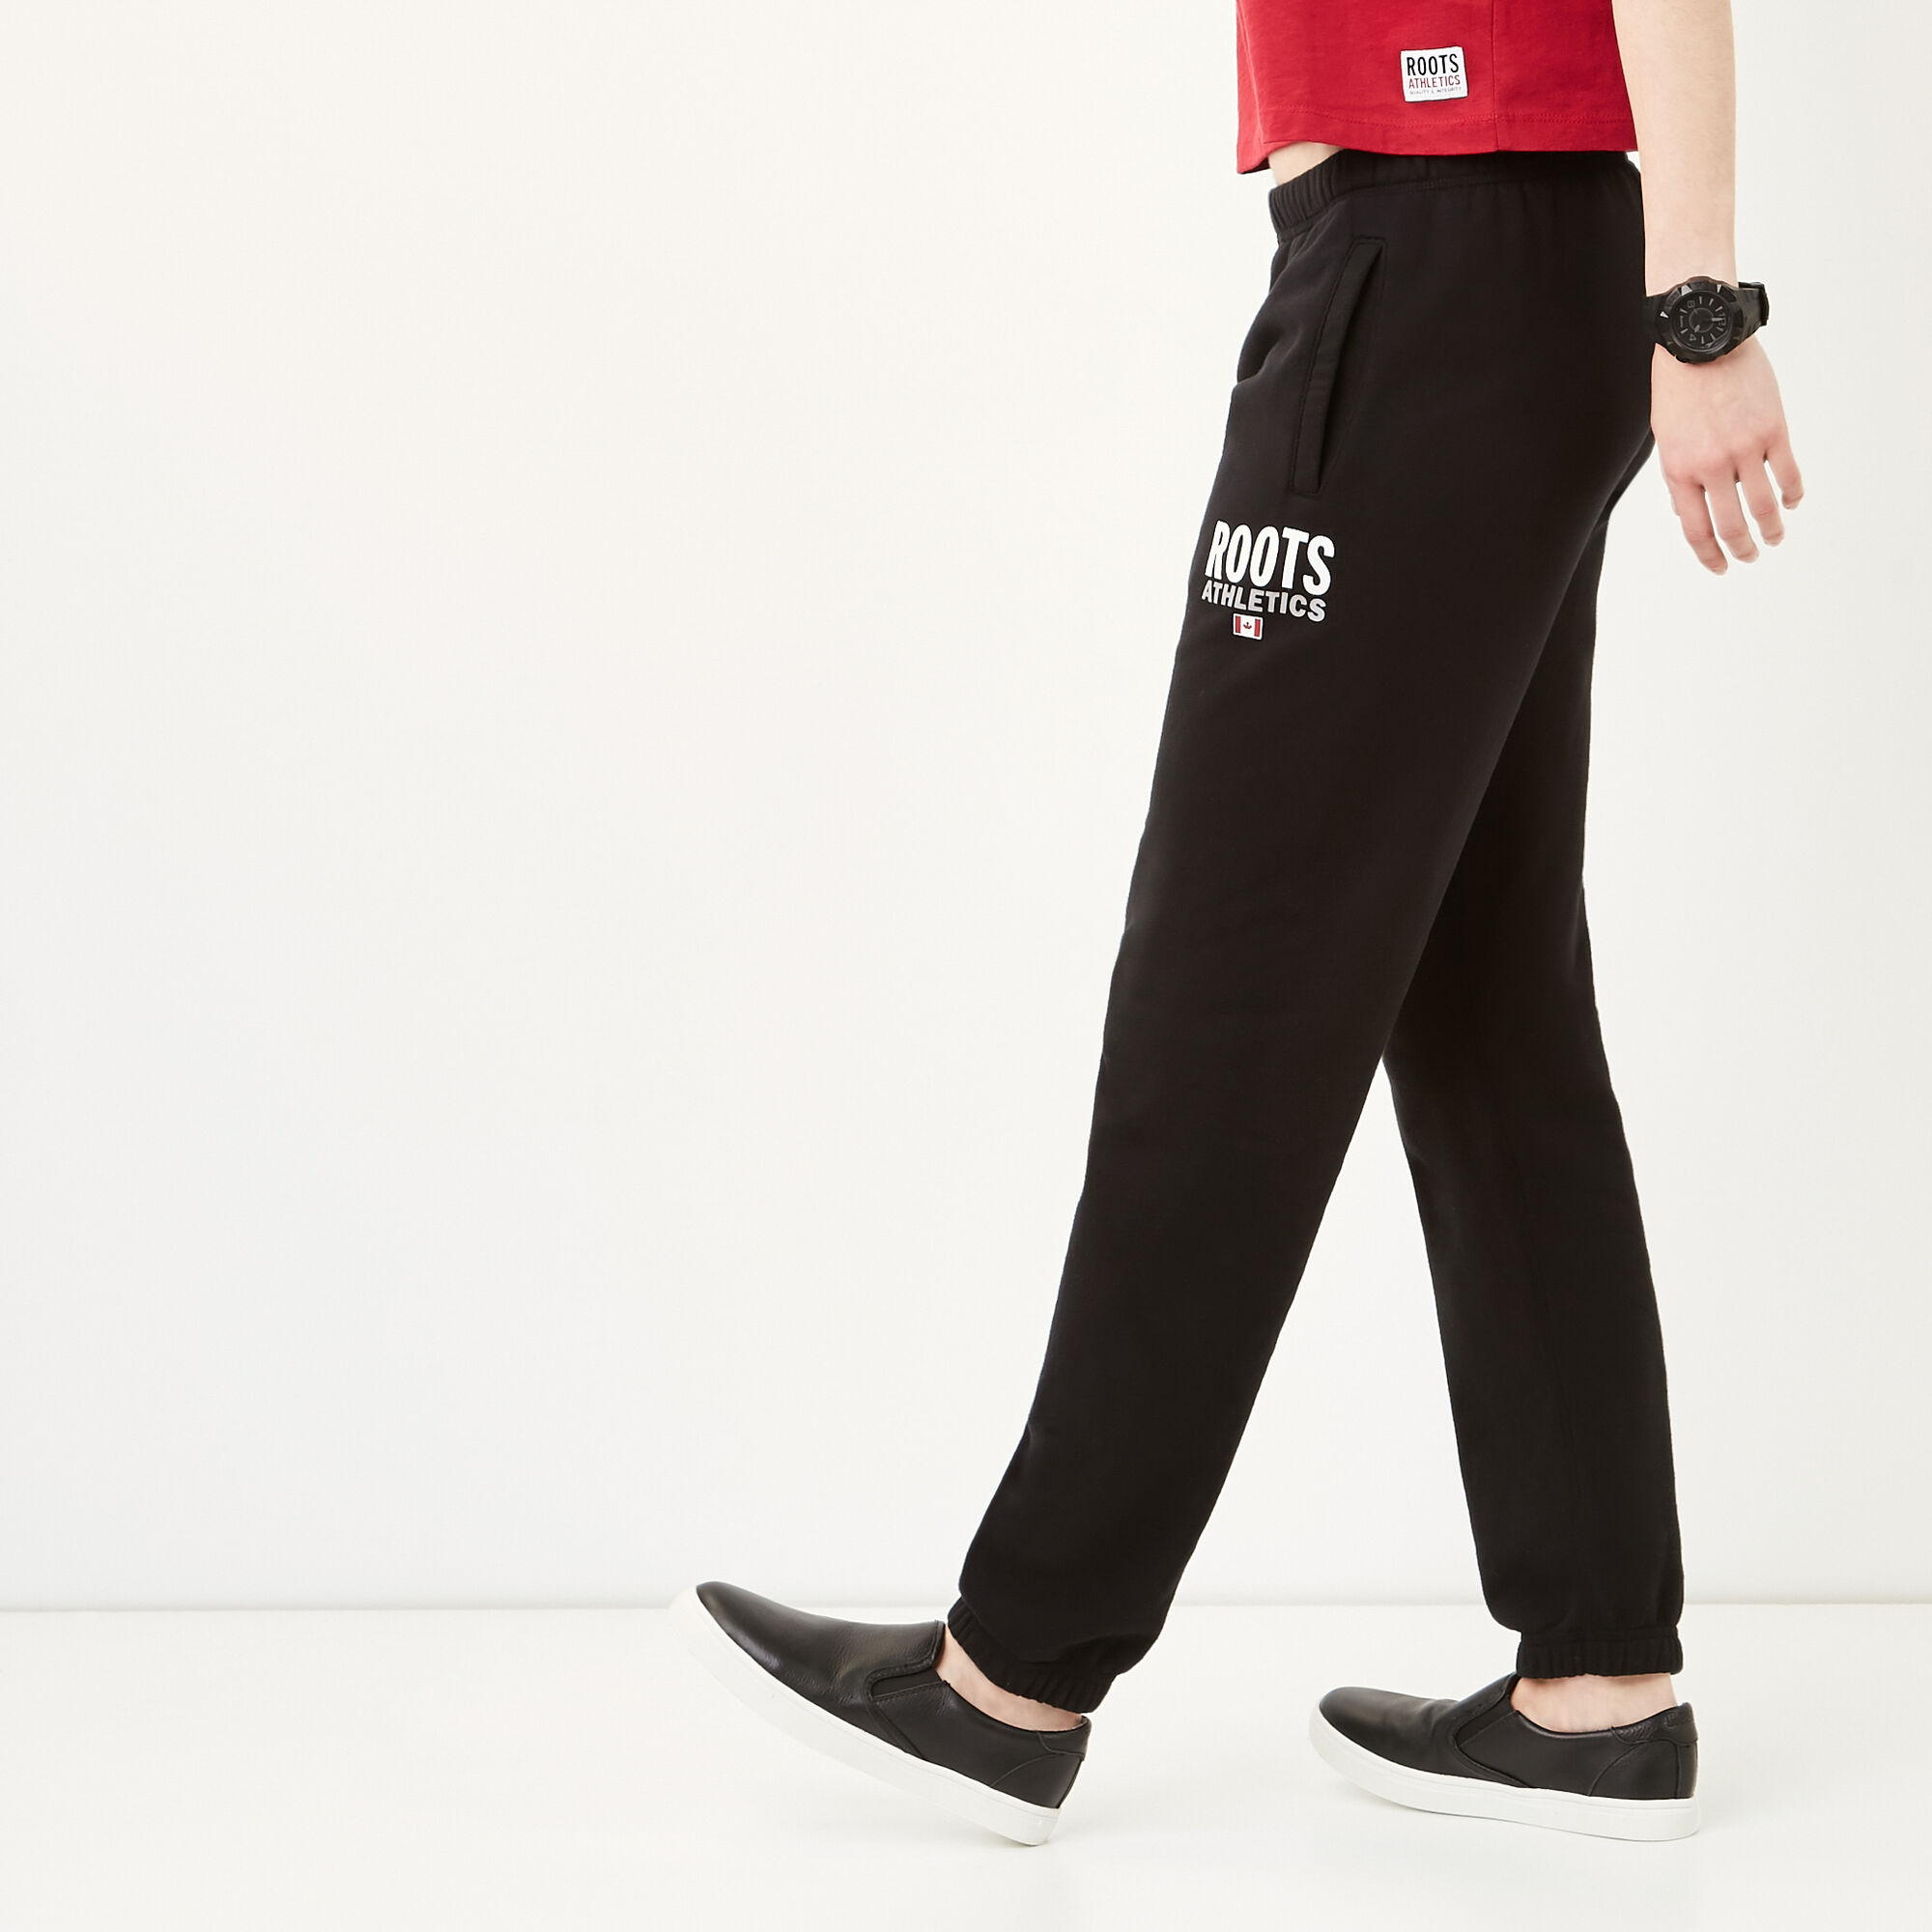 Roots Re-issue Sweatpant